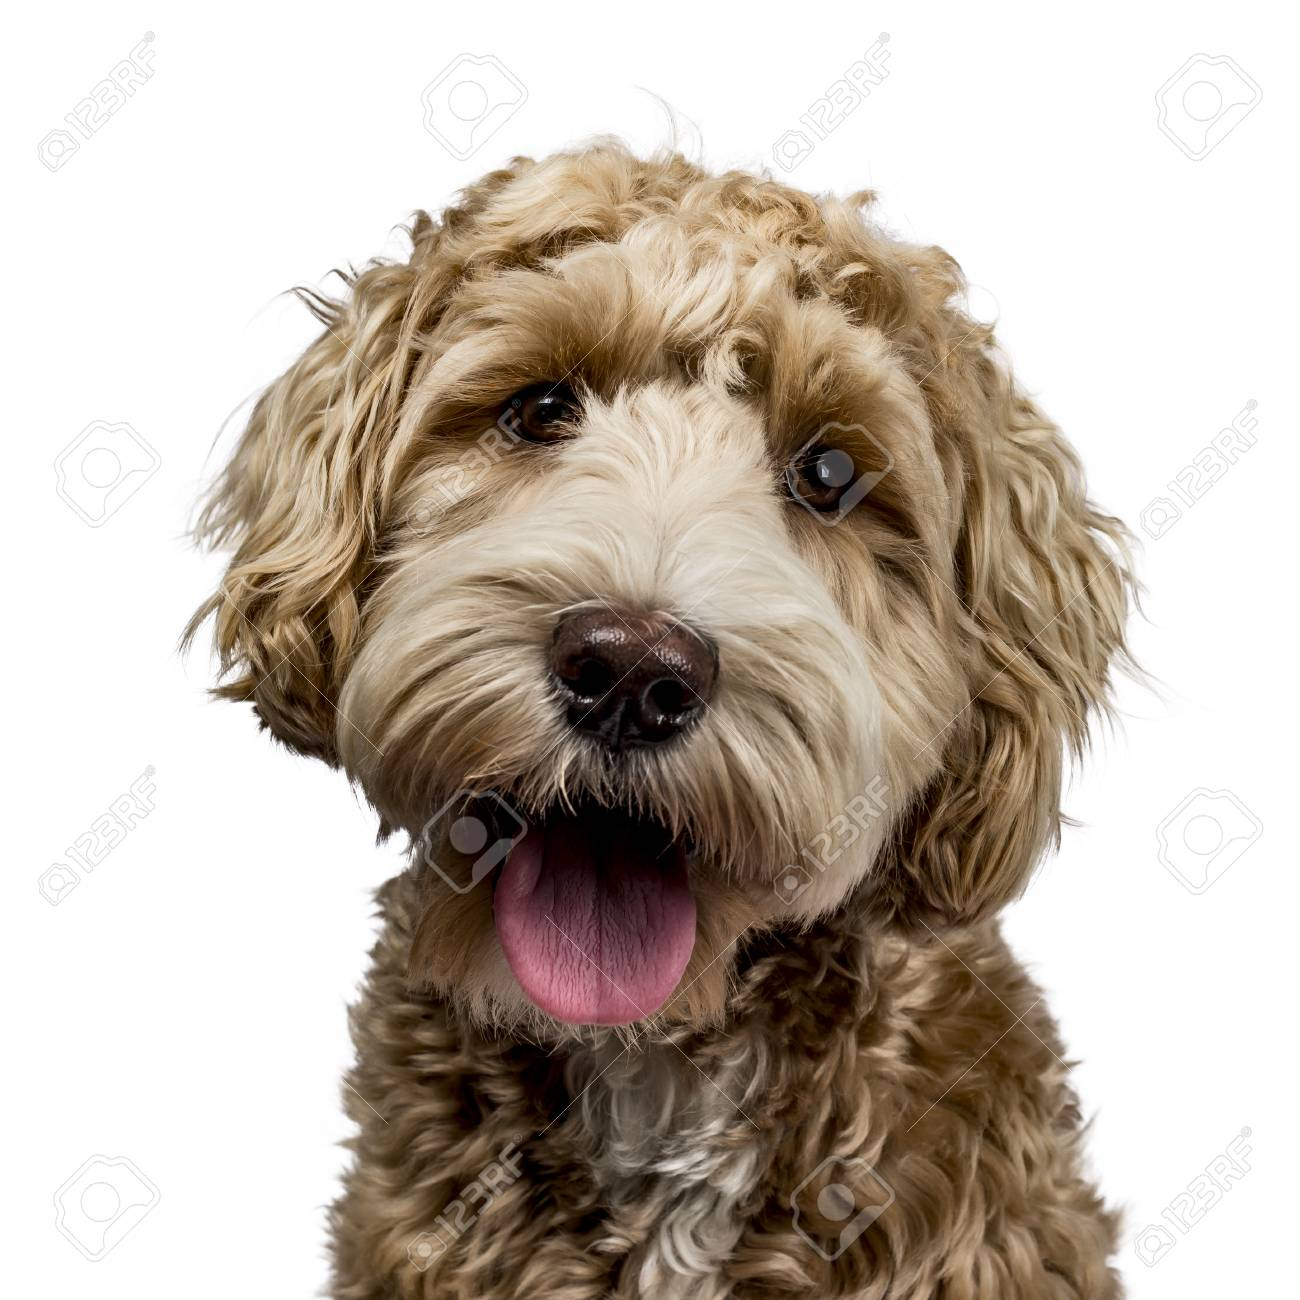 Head shot of golden Labradoodle with open mouth, looking straight at camera isolated on white background - 97556972